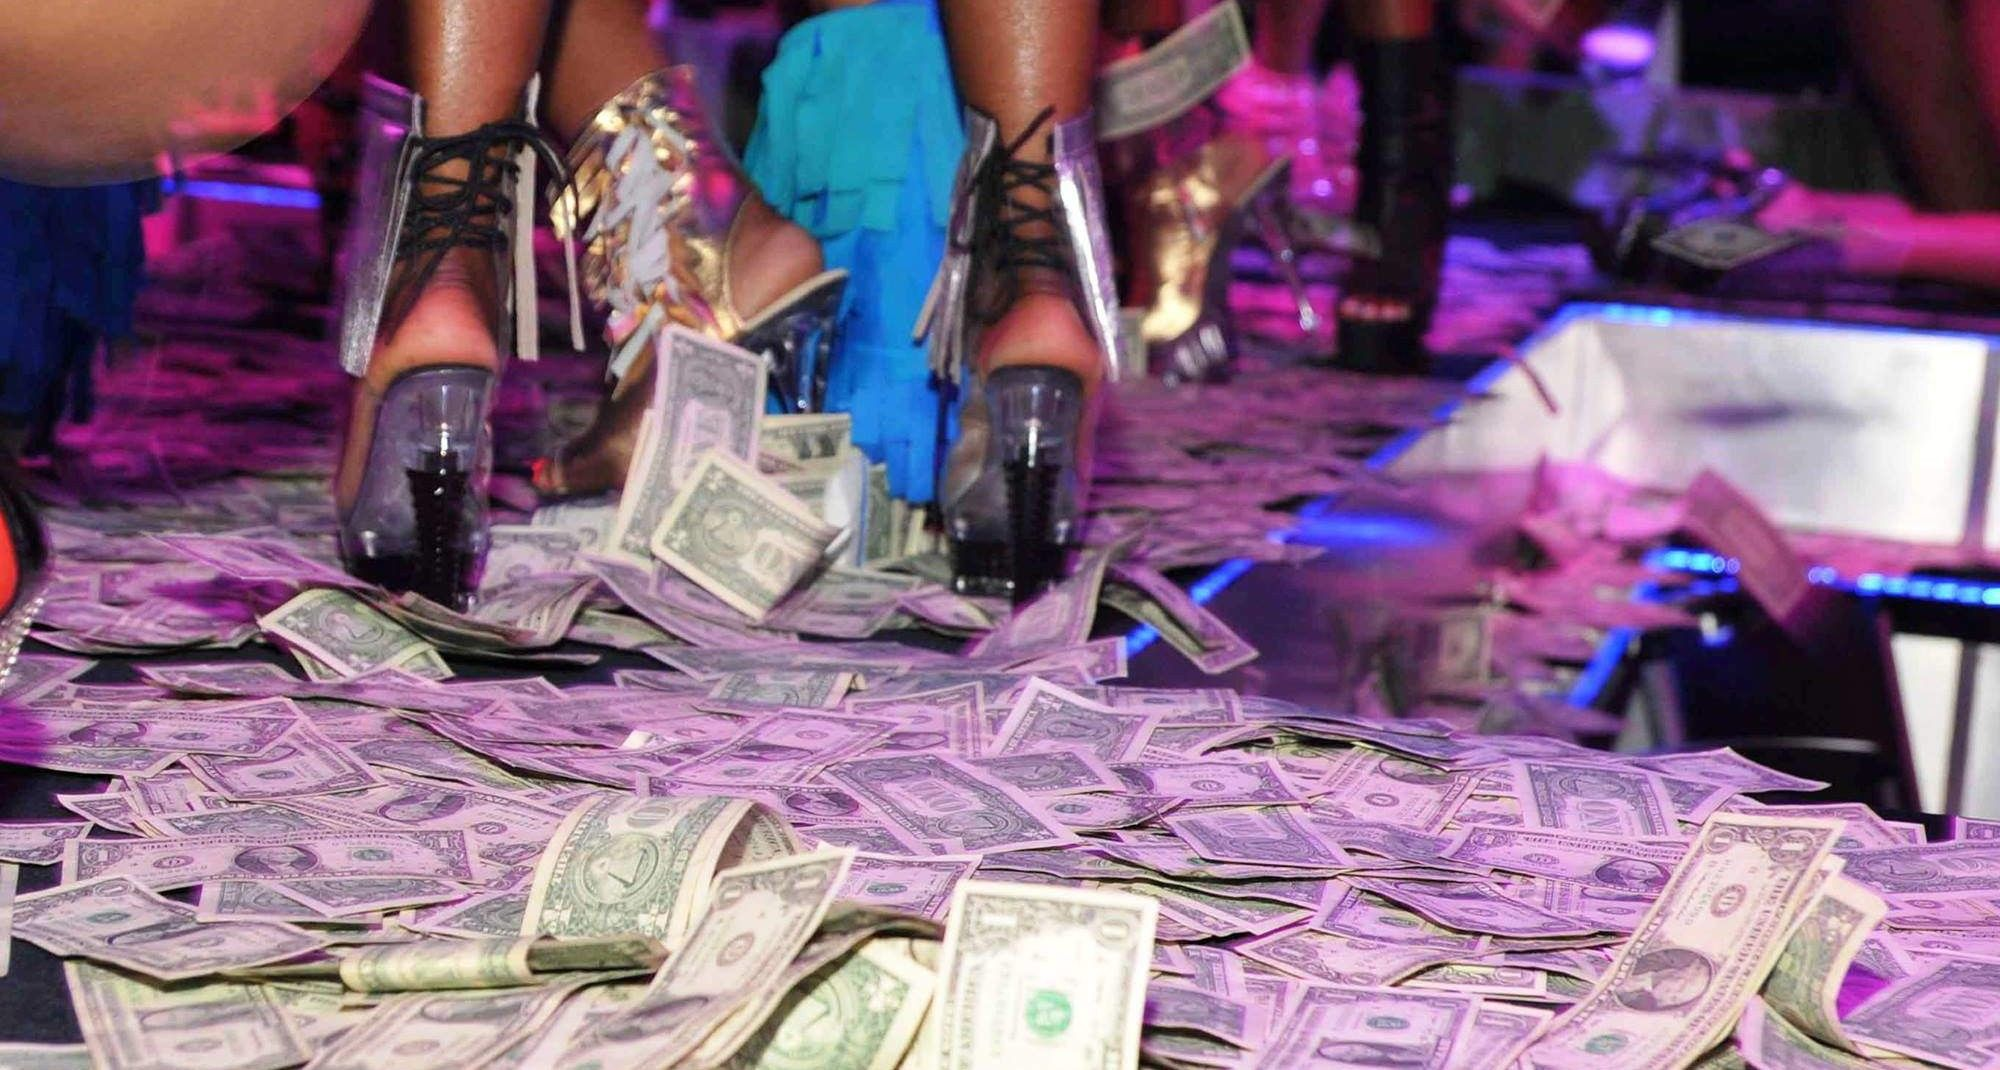 12 Strip Clubs That Should Be On Everyone's Bucket List